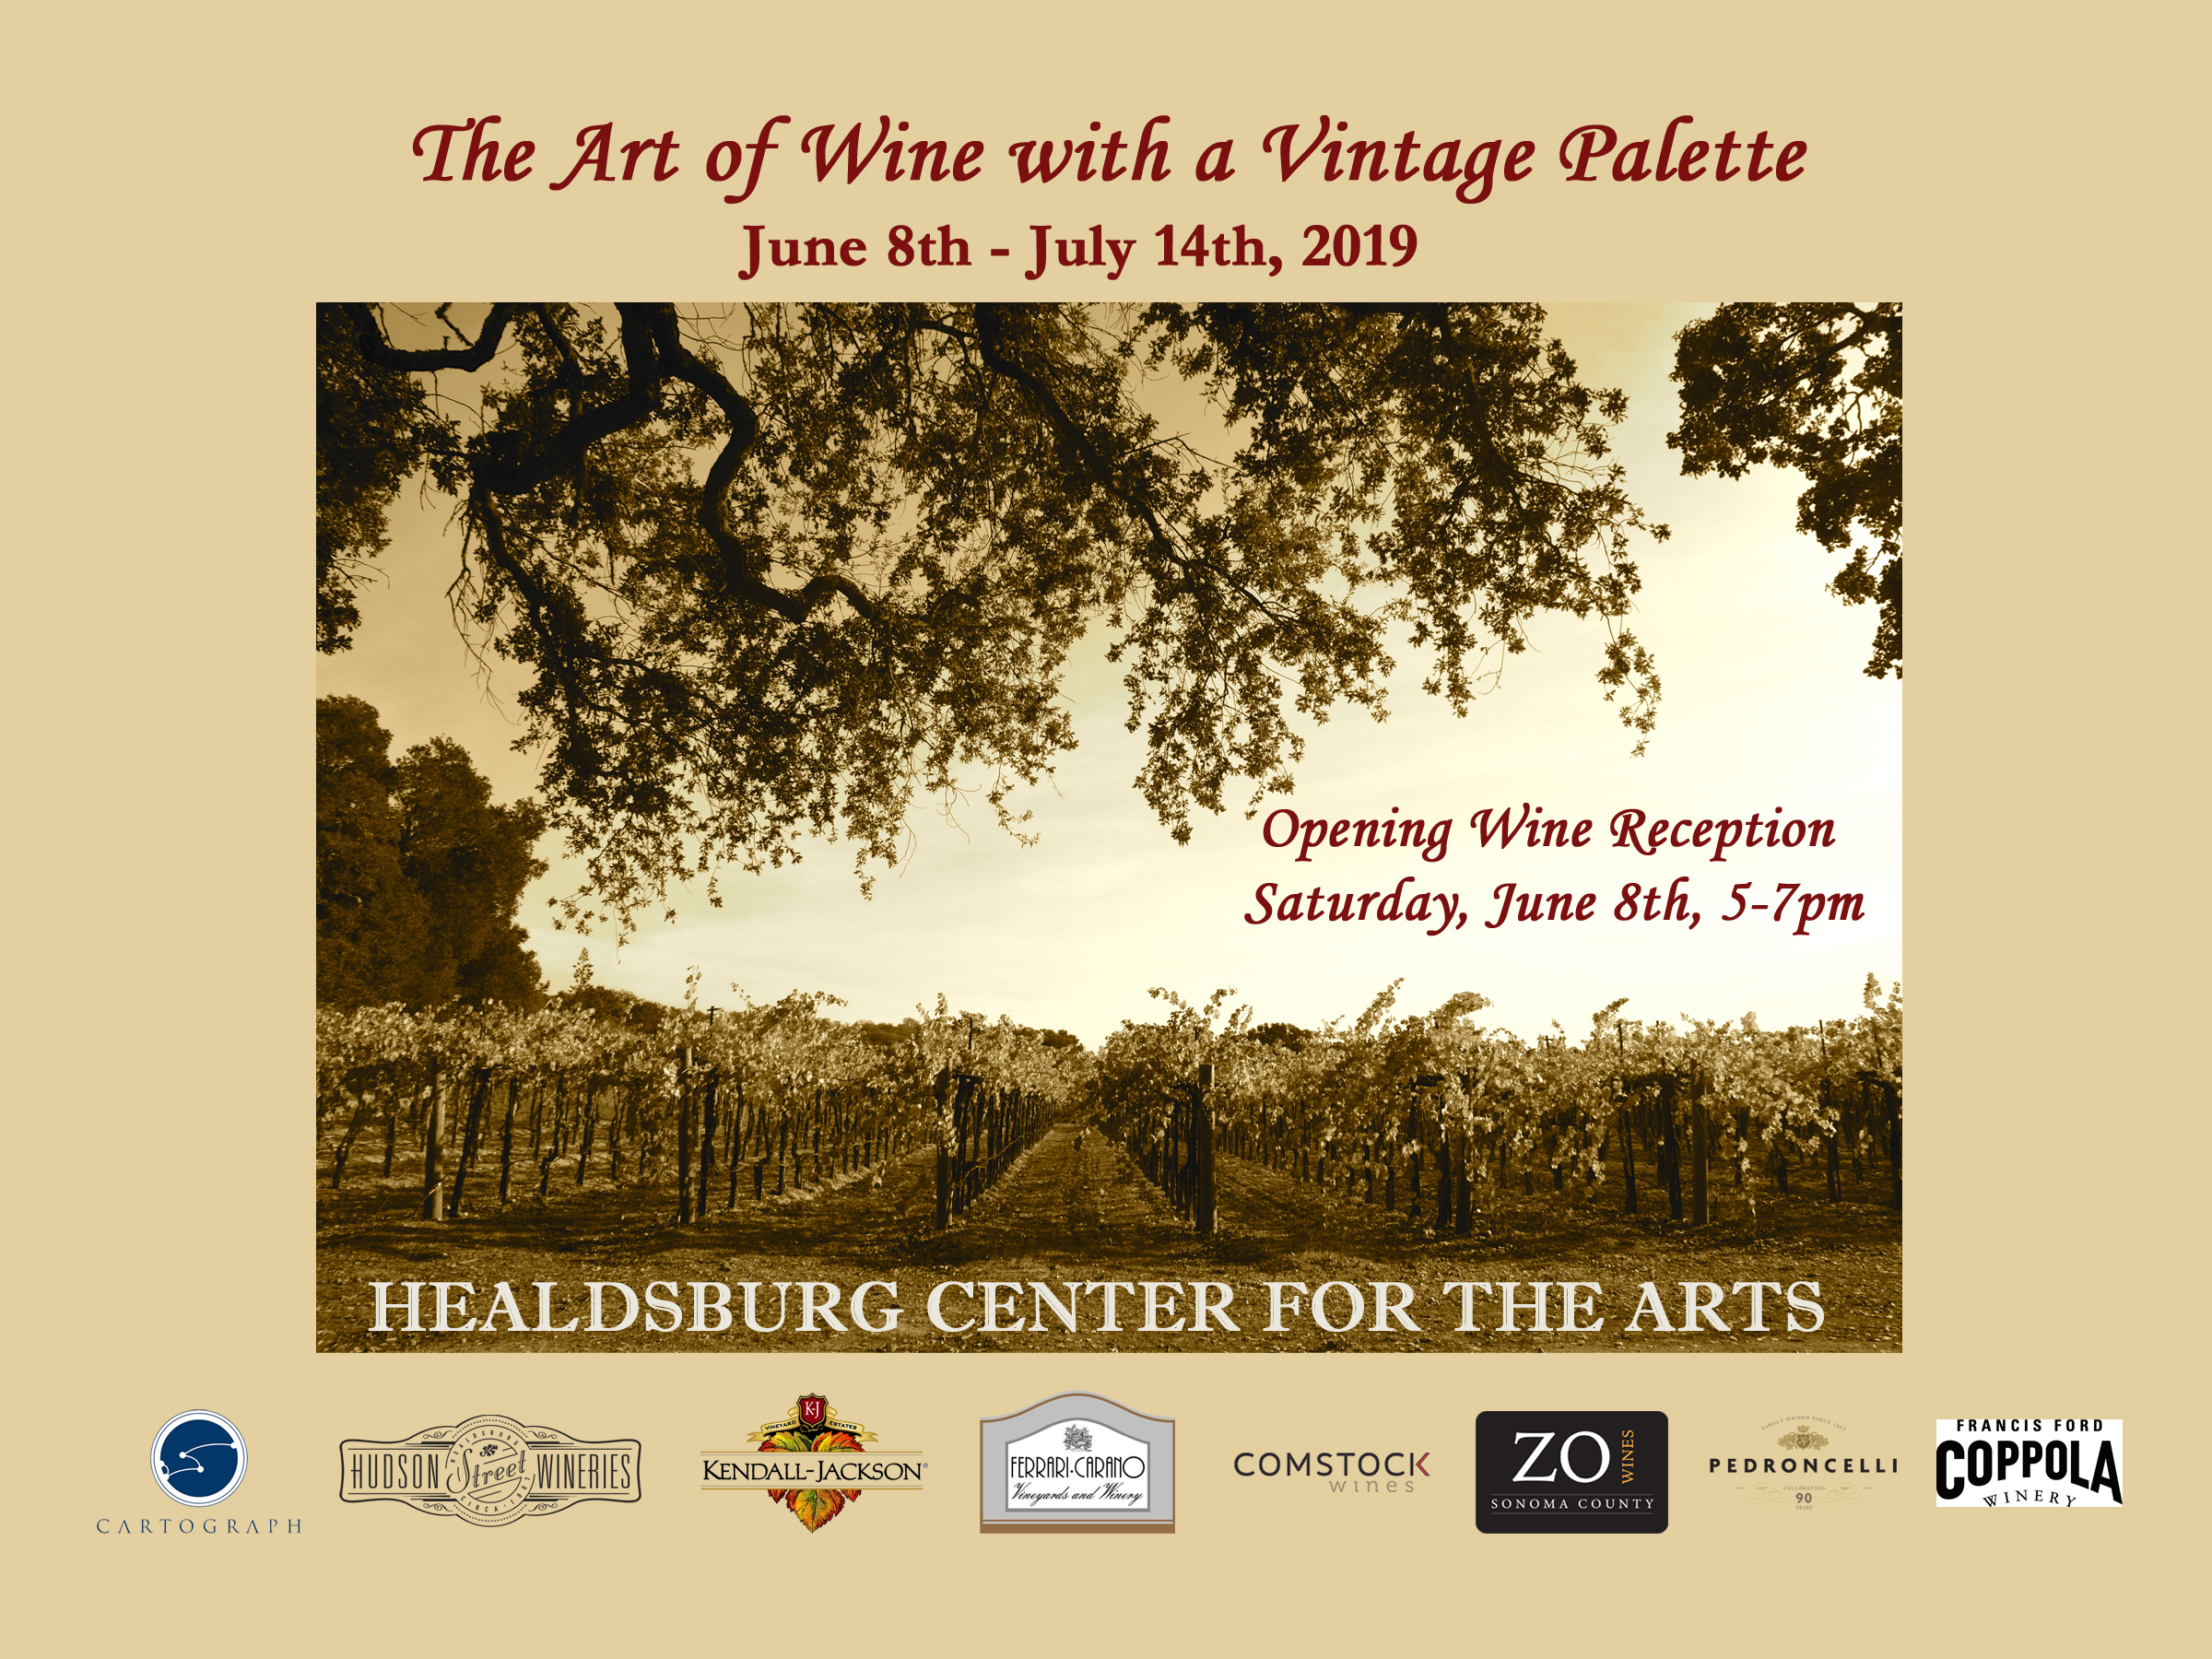 Wine Country Telephone   and   Wine Country Cowboys   included in this exhibition June 8-July 14, 2019